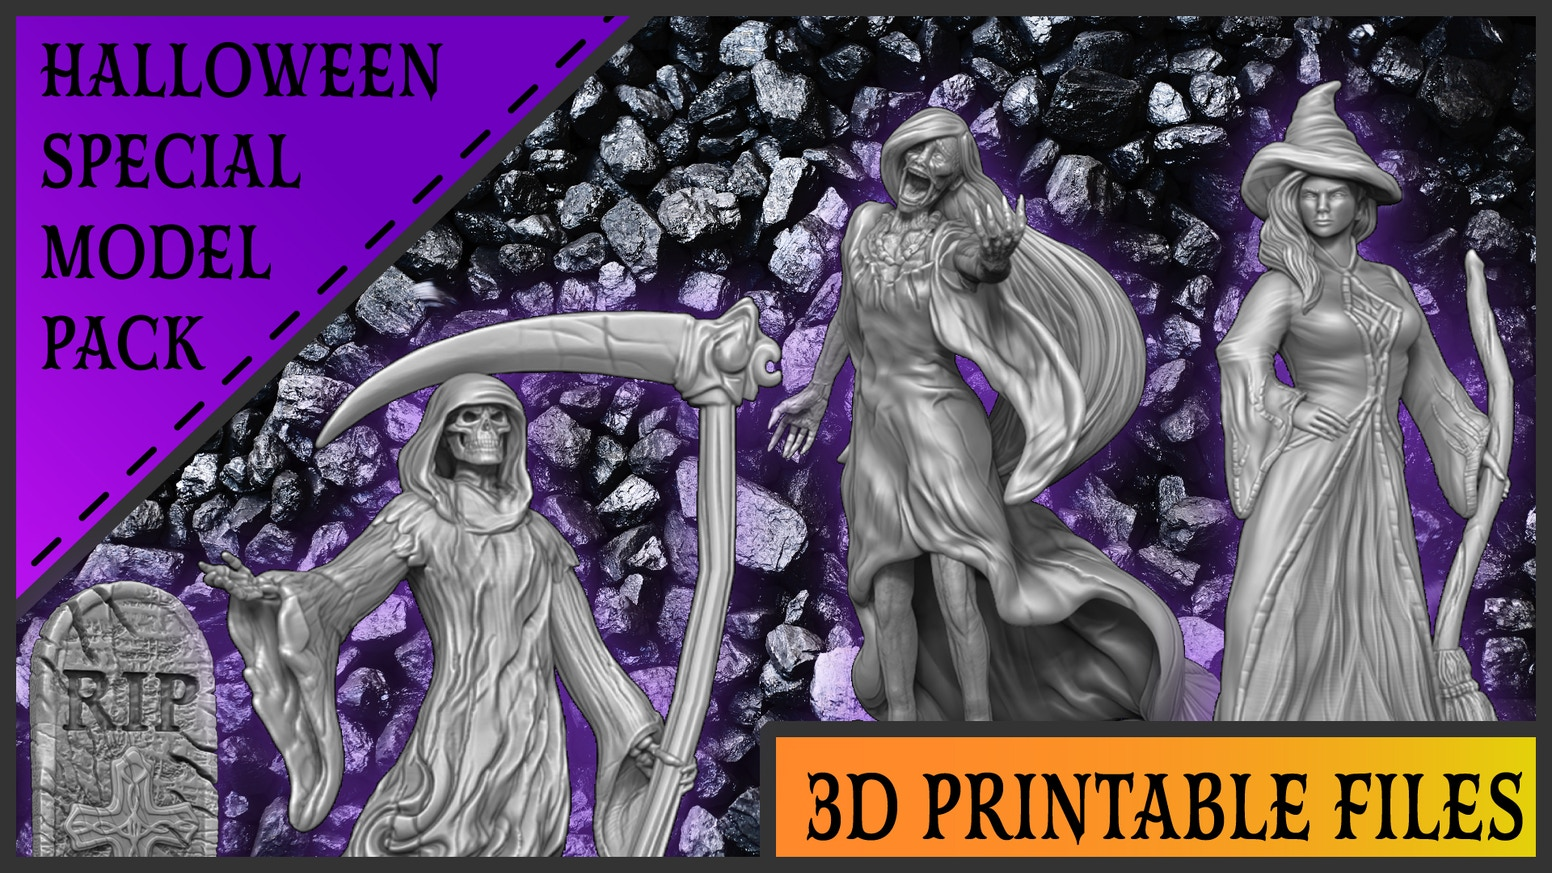 Spooky 3D printable tabletop miniatures for resin and FDM 3D printing.